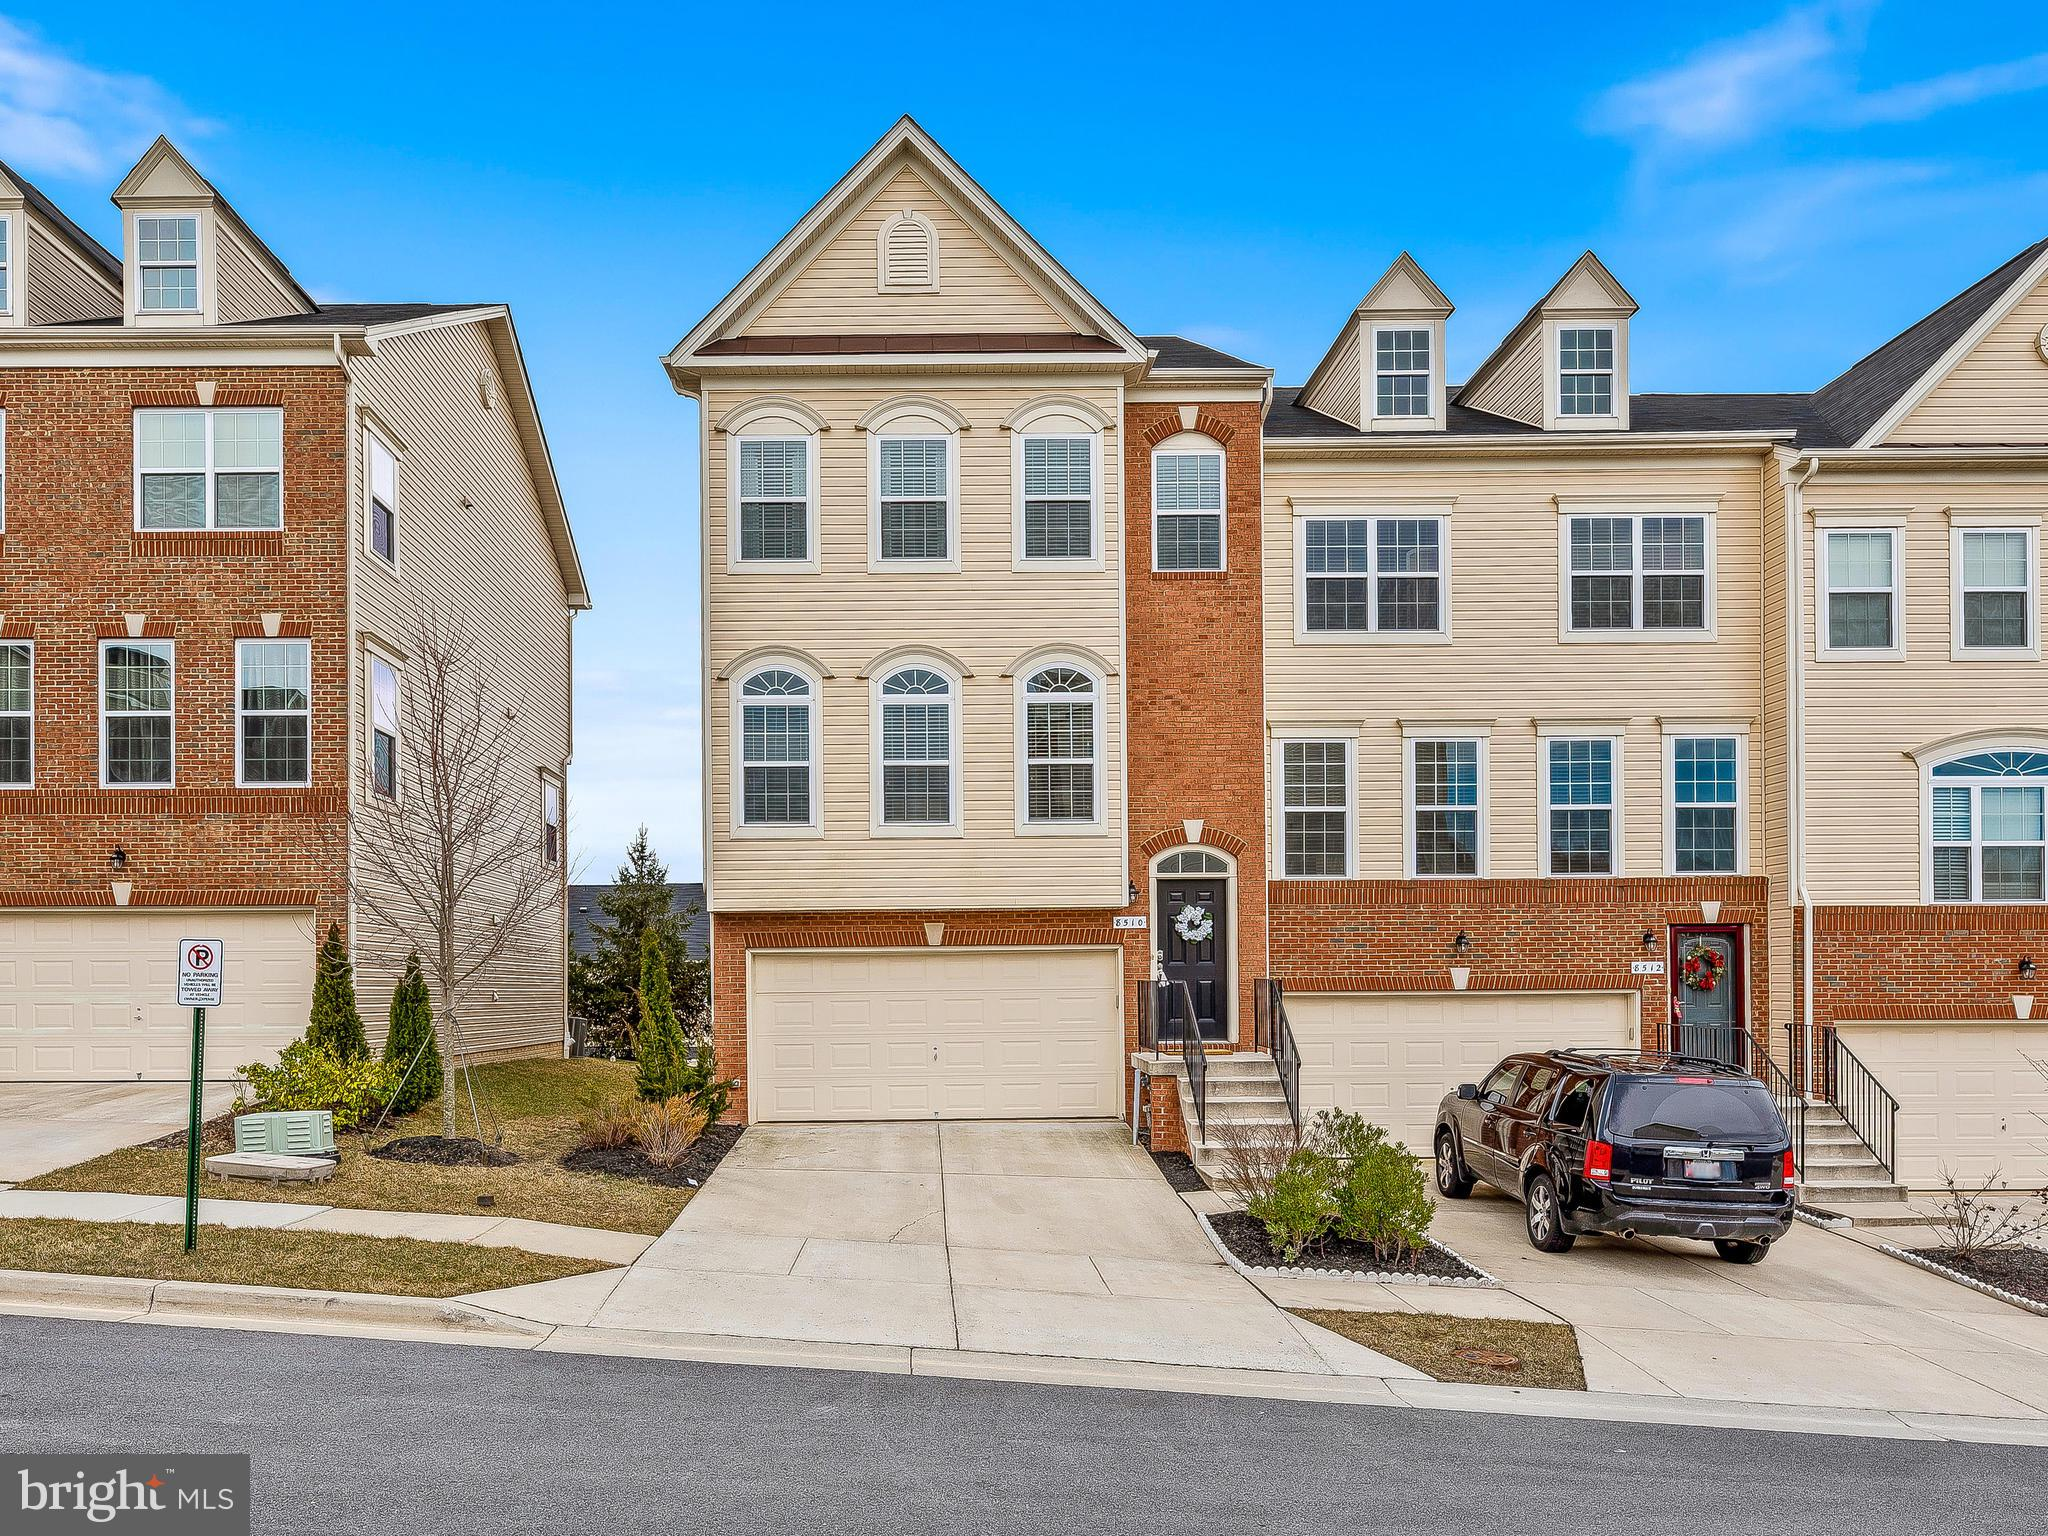 8510 WINDING TRAIL, LAUREL, MD 20724